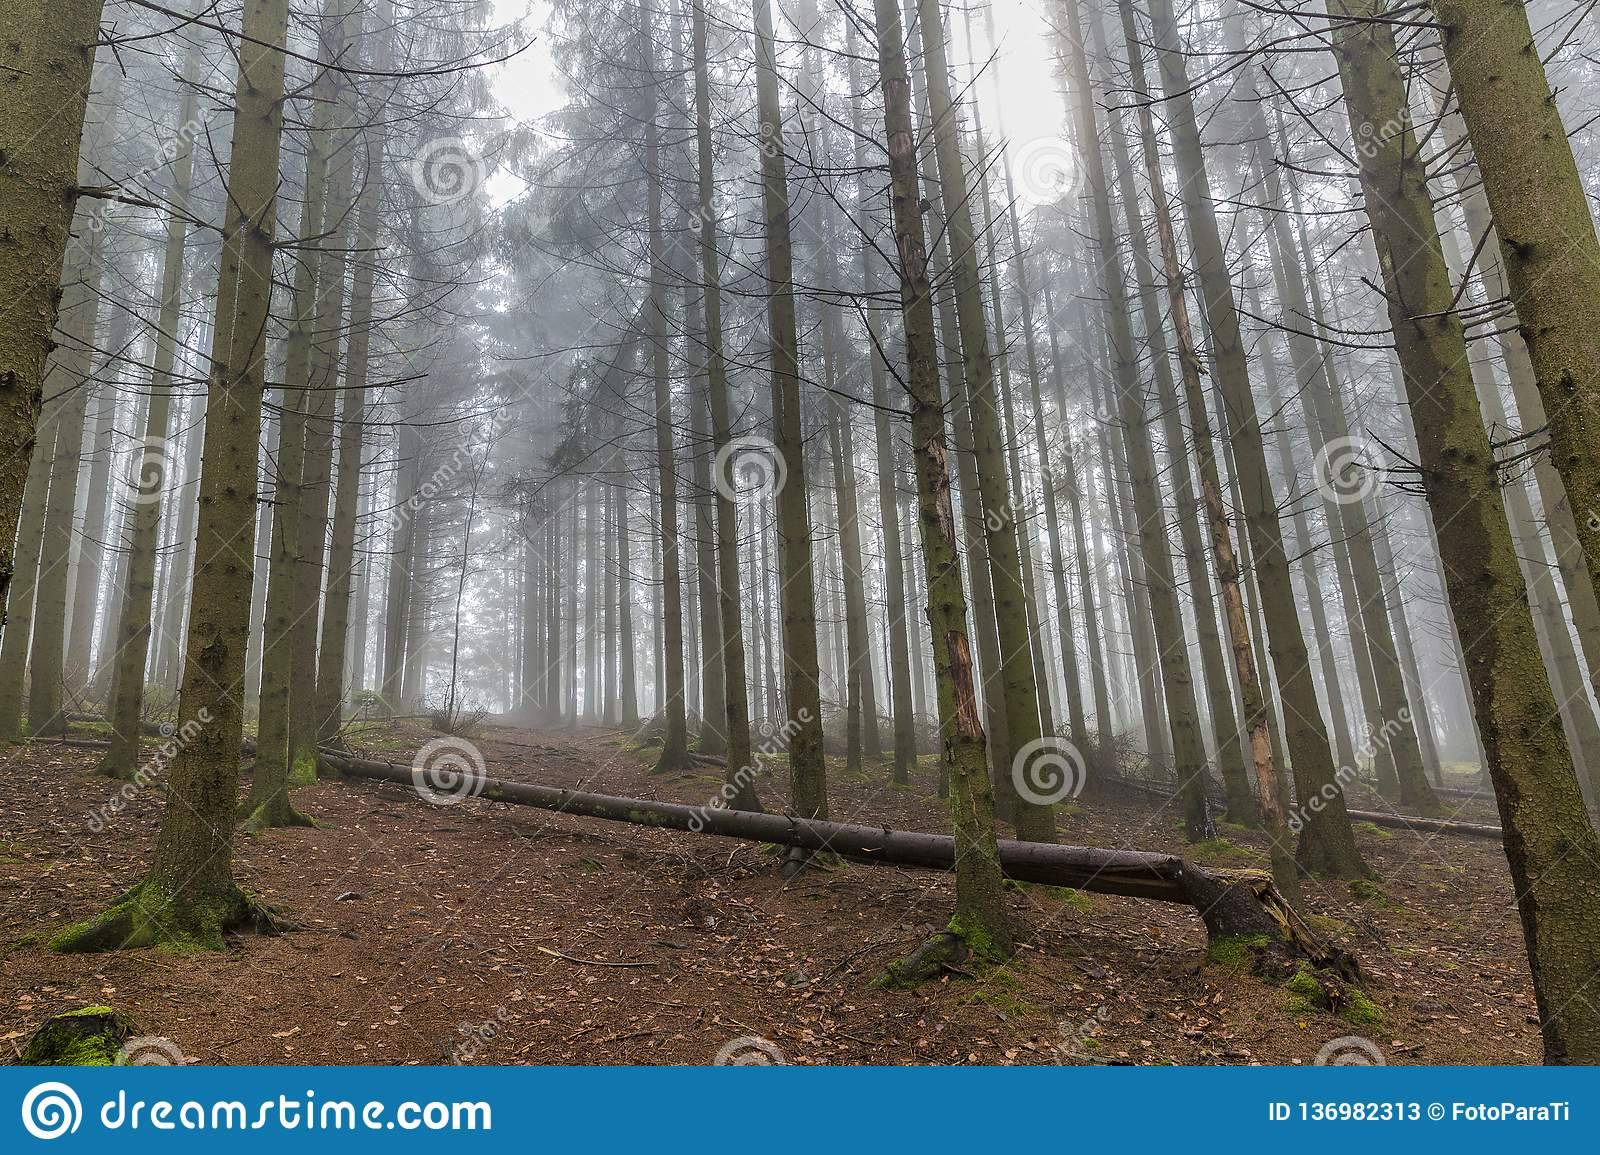 Image of tall pine trees from a lower perspective in the forest